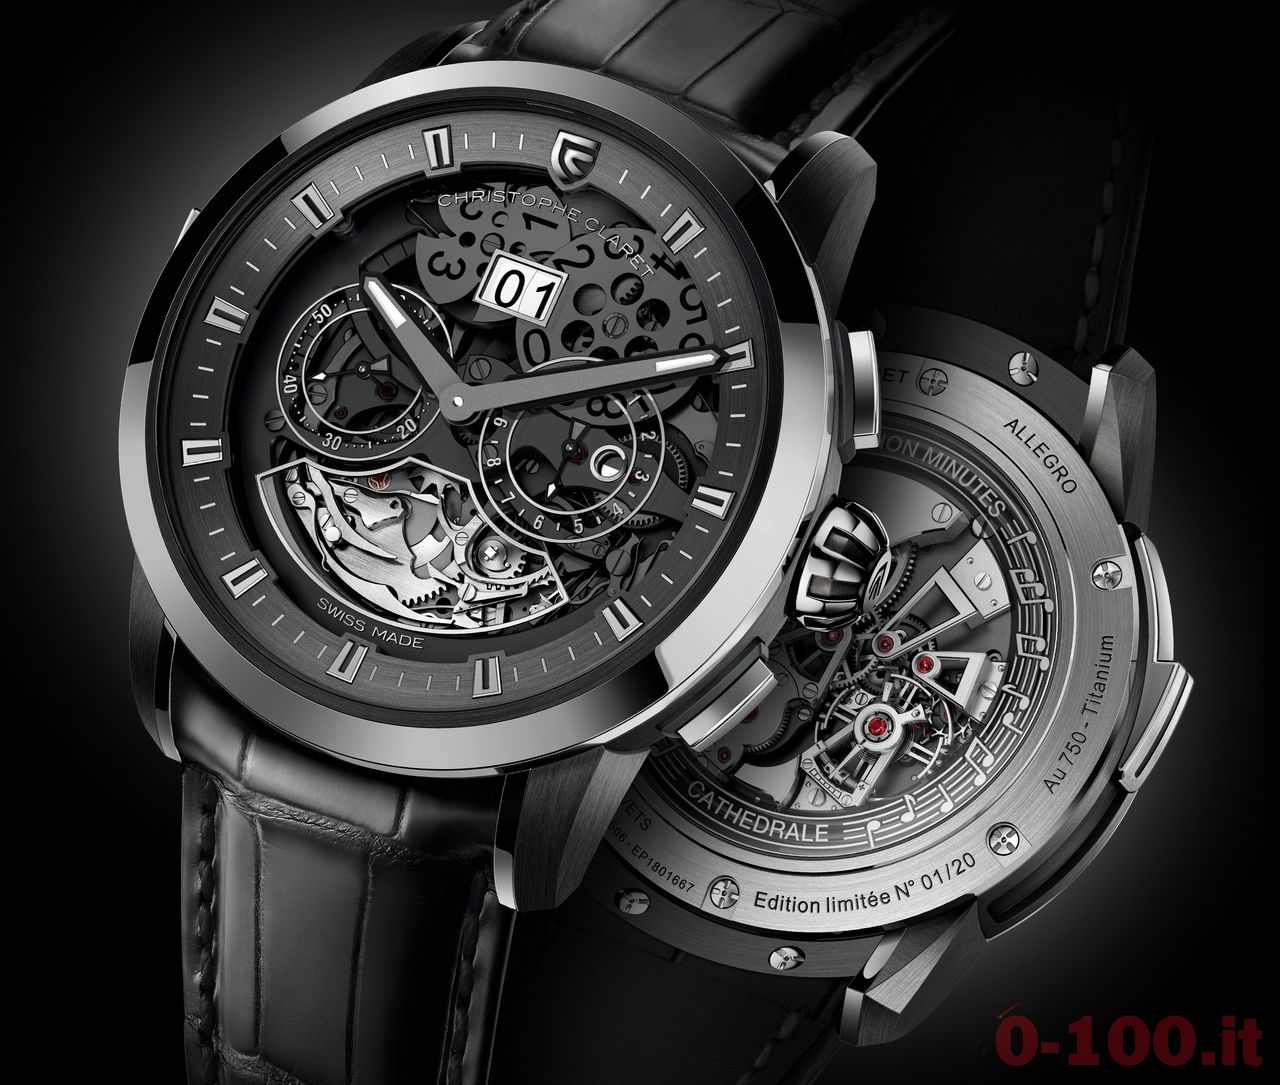 christophe-claret-allegro-limited-edition-prezzo-price_0-100_2